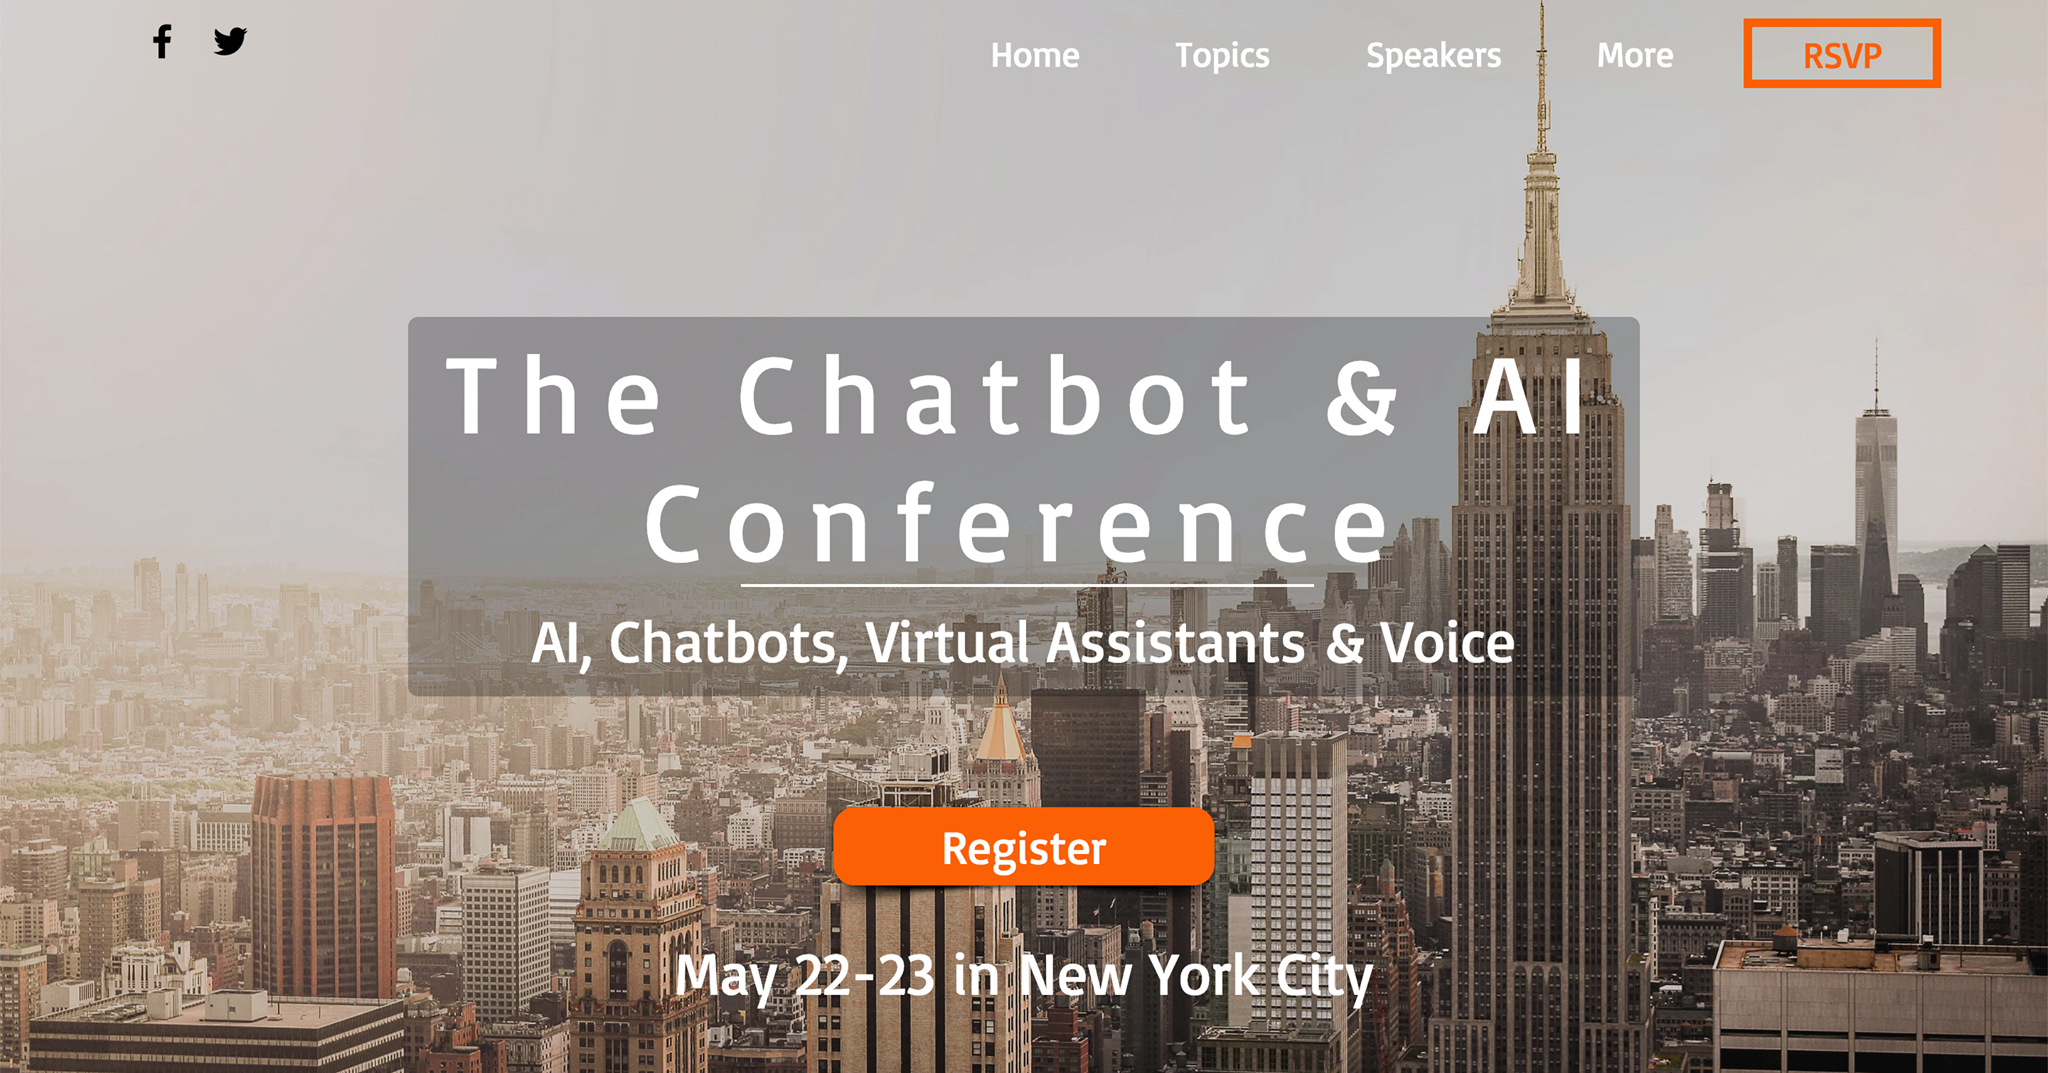 The Undying Trend: Chatbots (What It Has To Do In 2019)   Iqonic Design  The Undying Trend: Chatbots (What It Has To Do In 2019) 1 ac4Wm94IFfL37KAAXnEUXQ